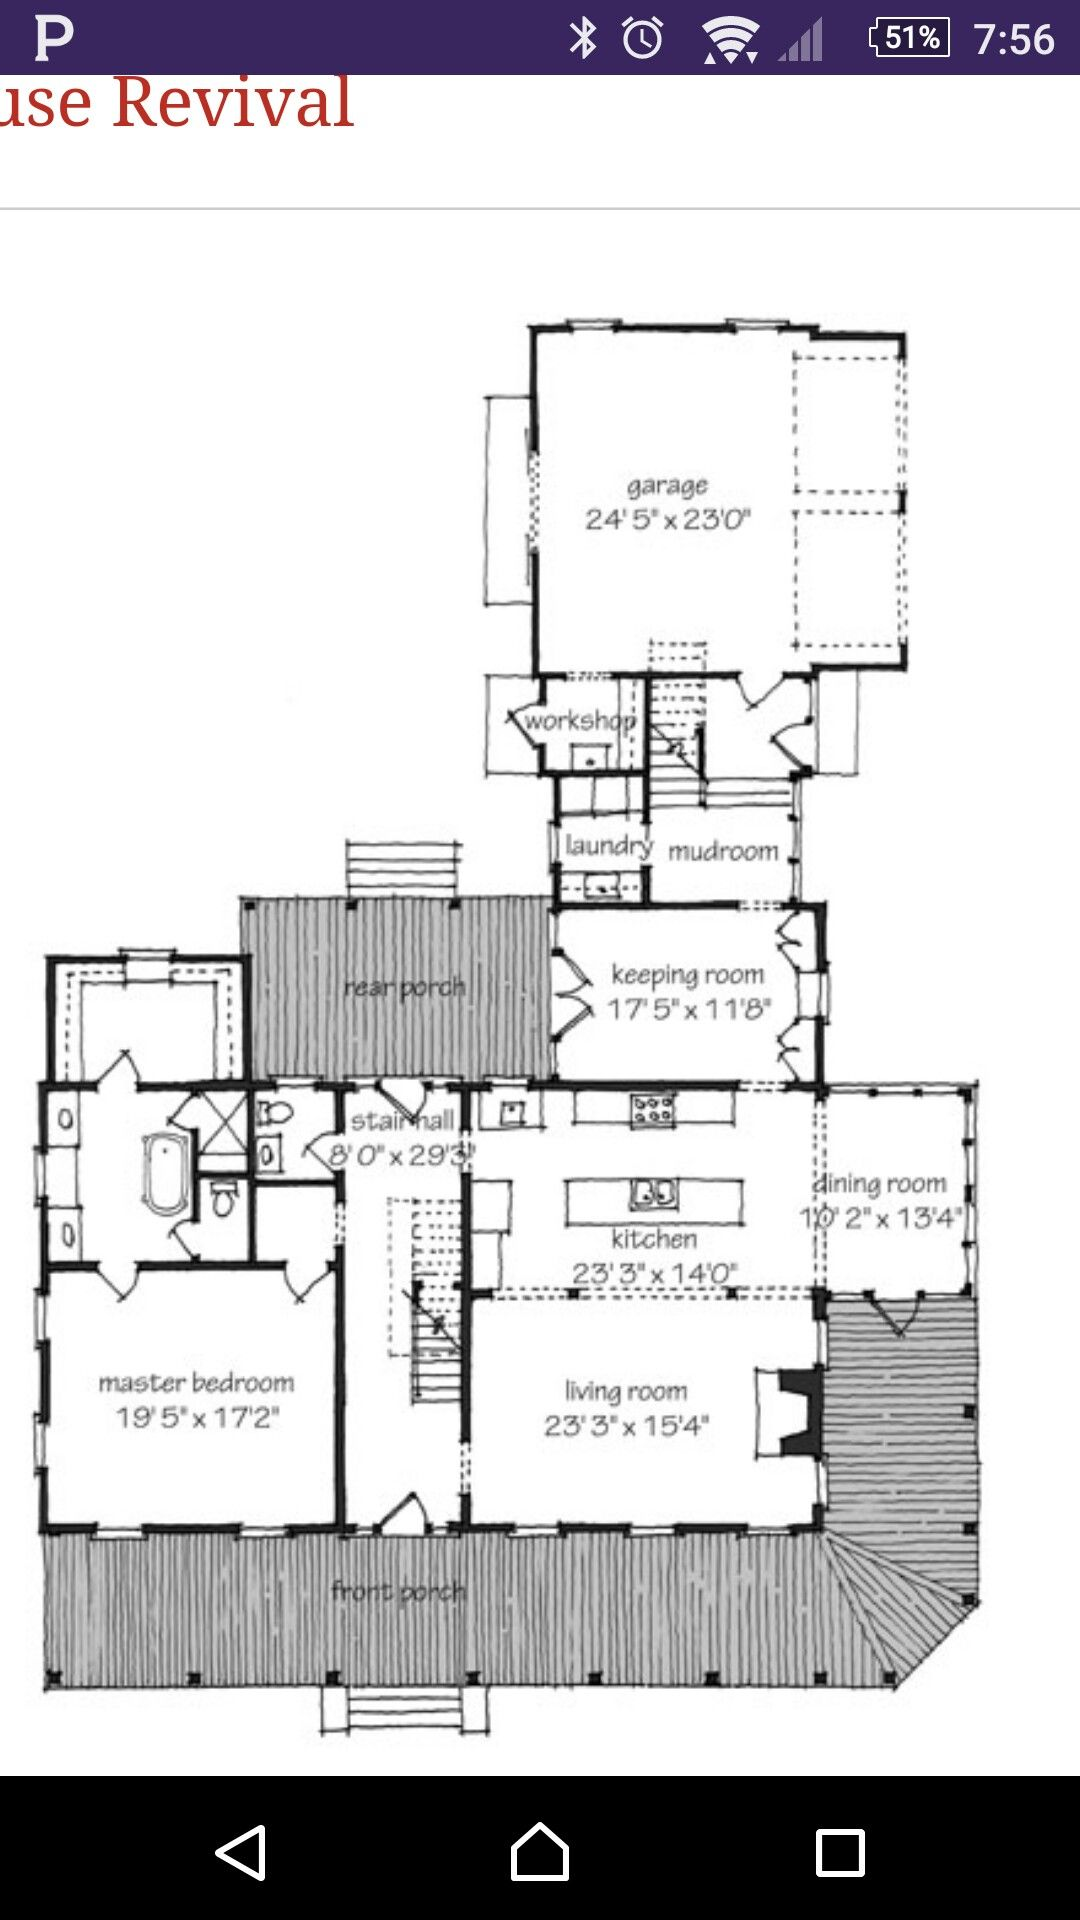 Perfect House Plan Components Big Verandah Big Kitchen With Island And Walk In Pantry Hidden Garage S Southern Living House Plans House Plans Floor Plans